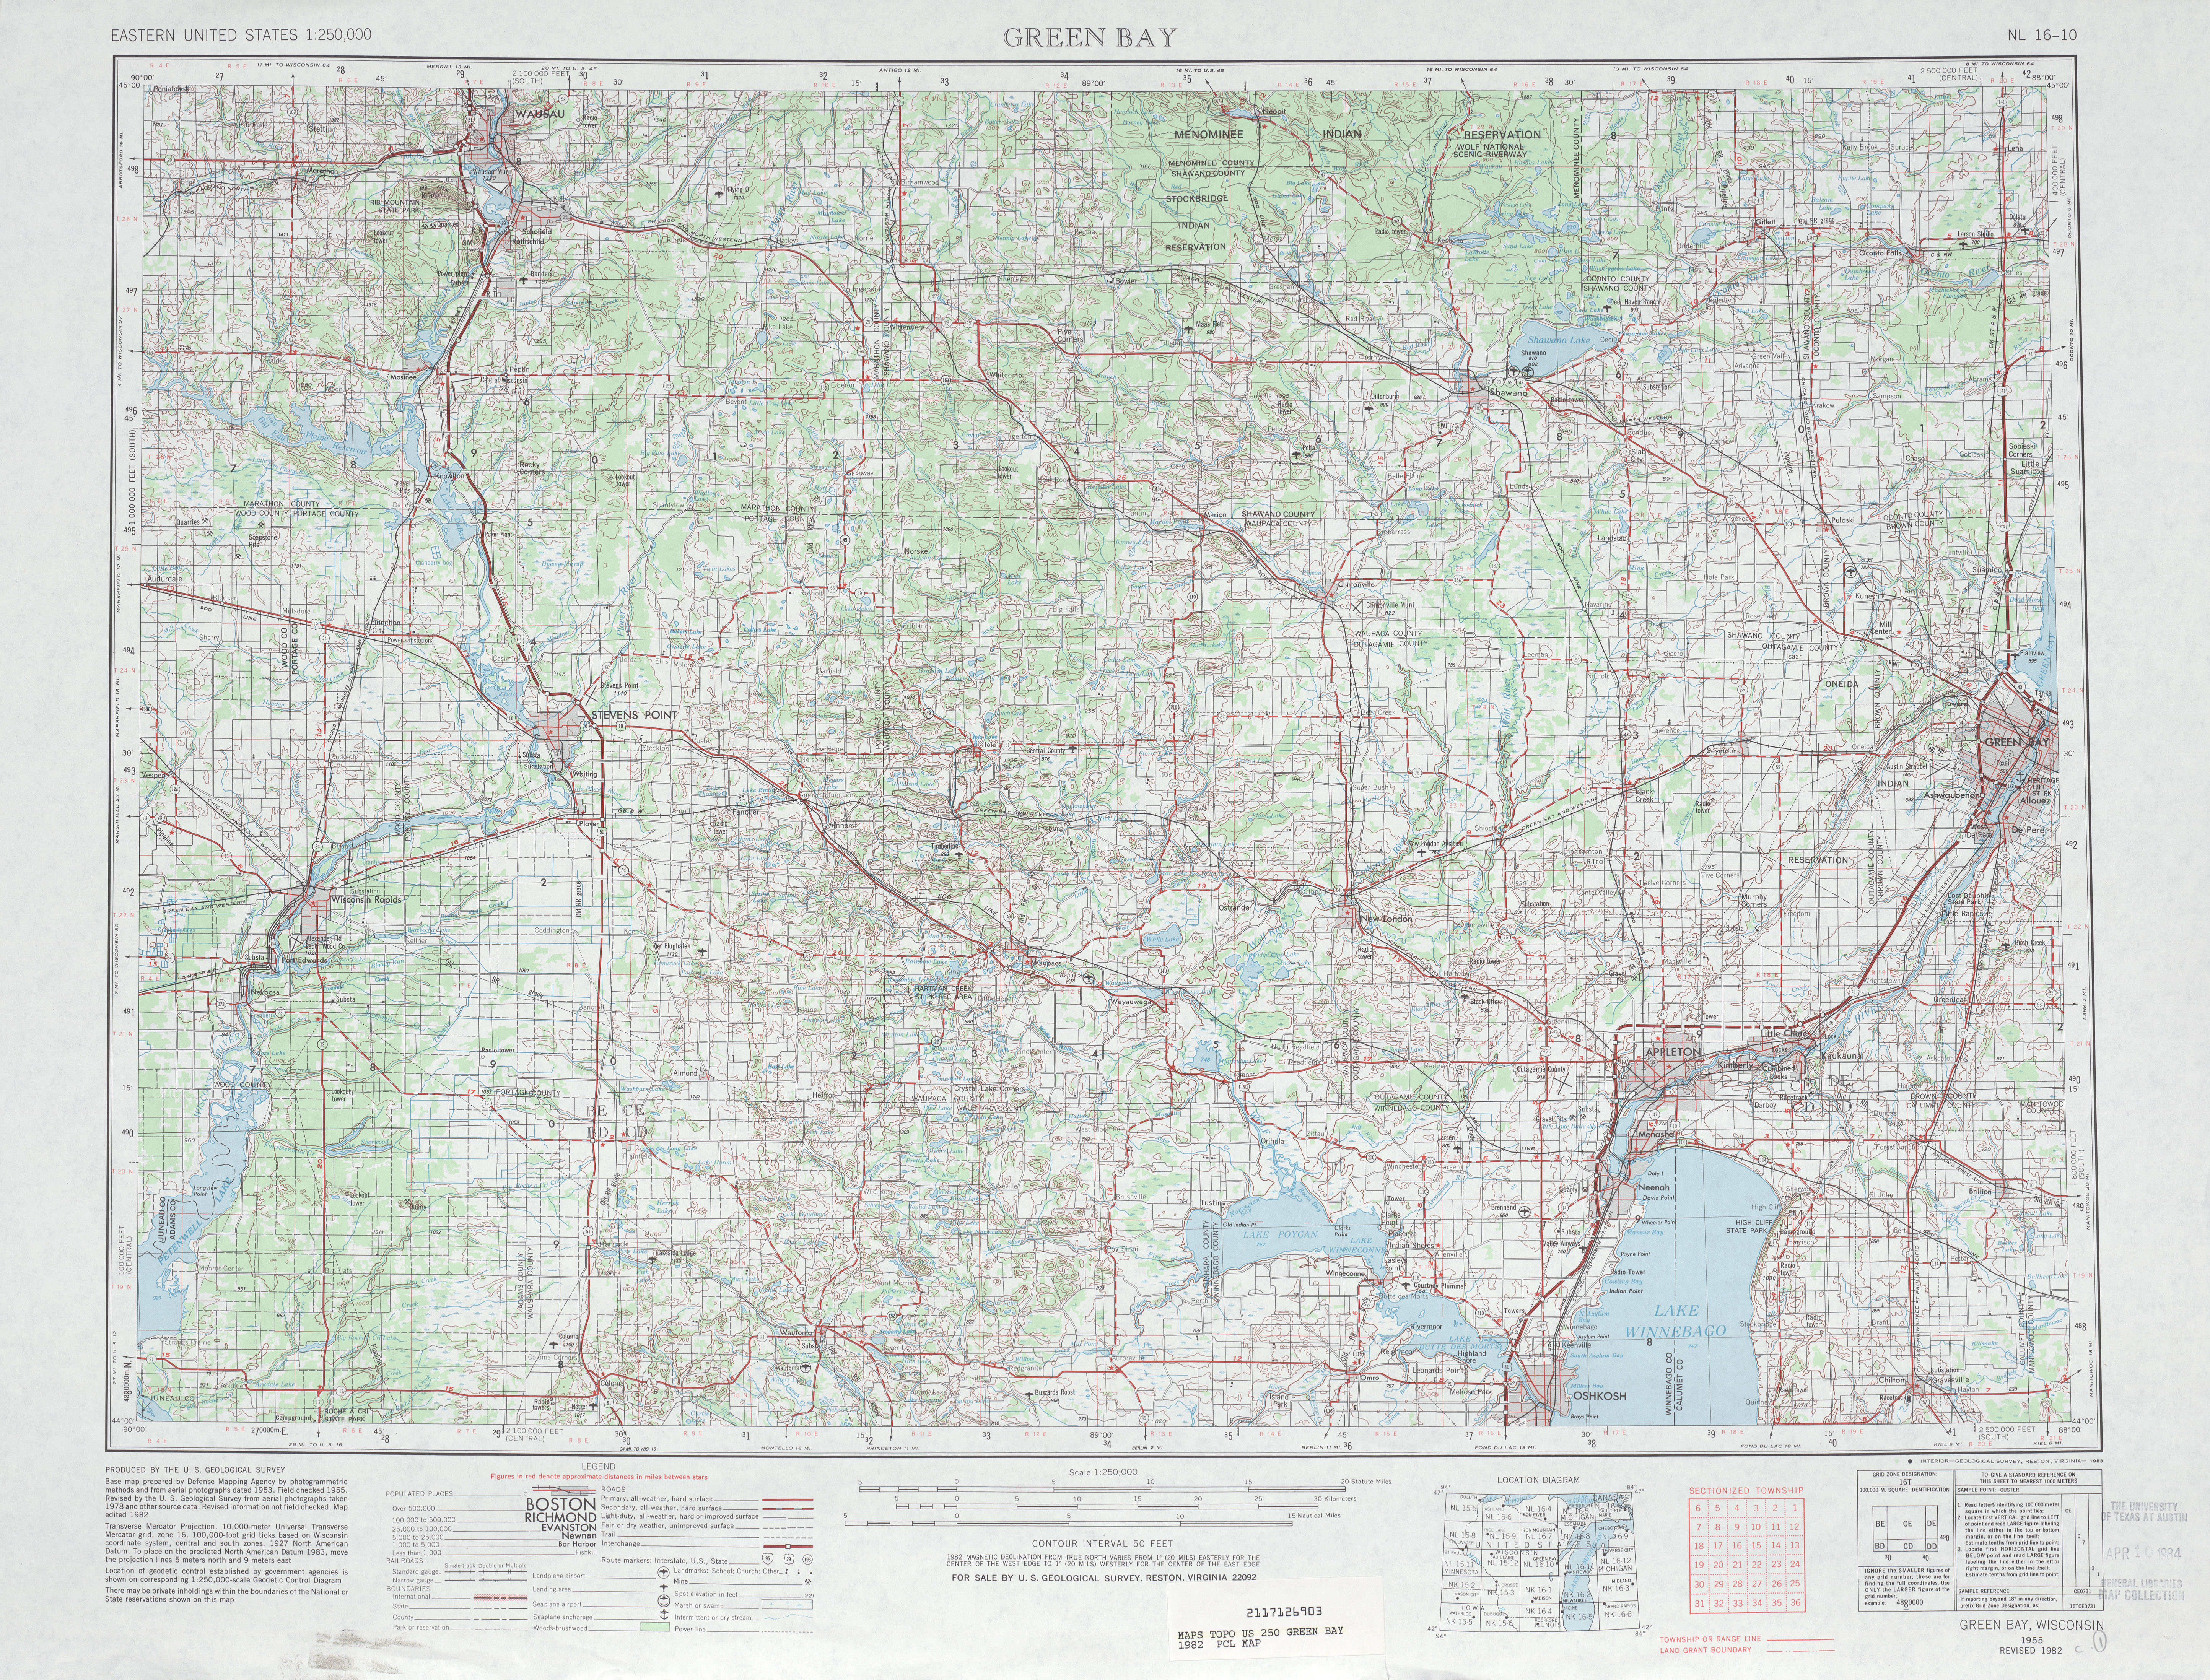 Green Bay Topographic Map Sheet, United States 1982